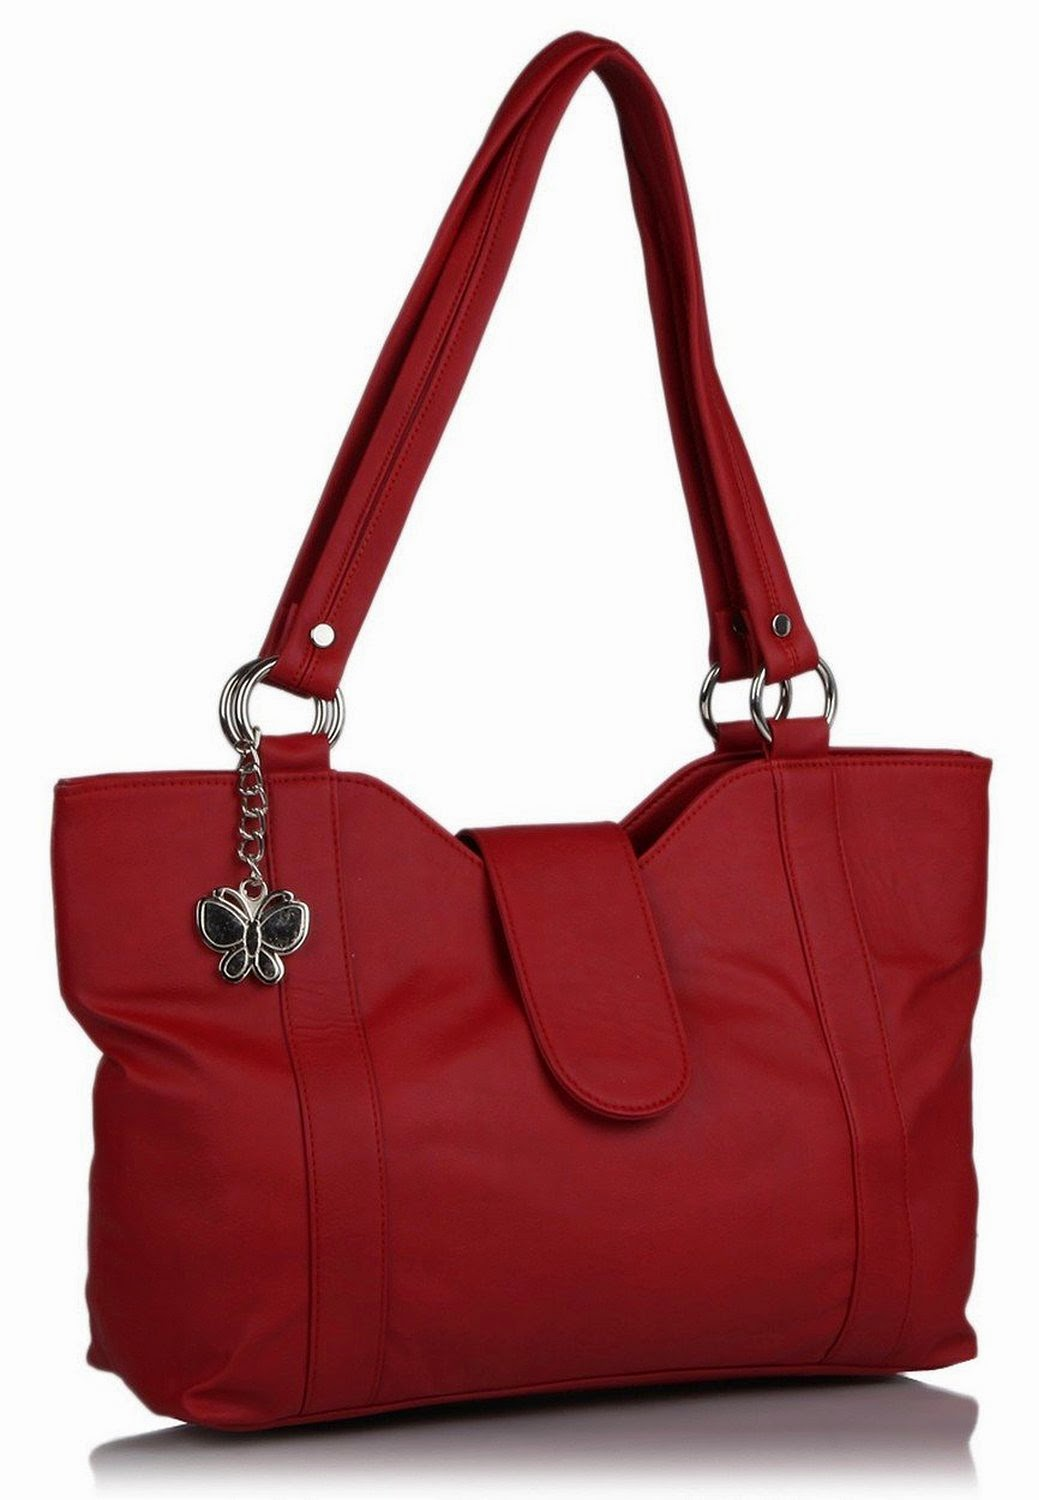 Butterflies Handbag (Red) worth Rs 1099 for Rs 579